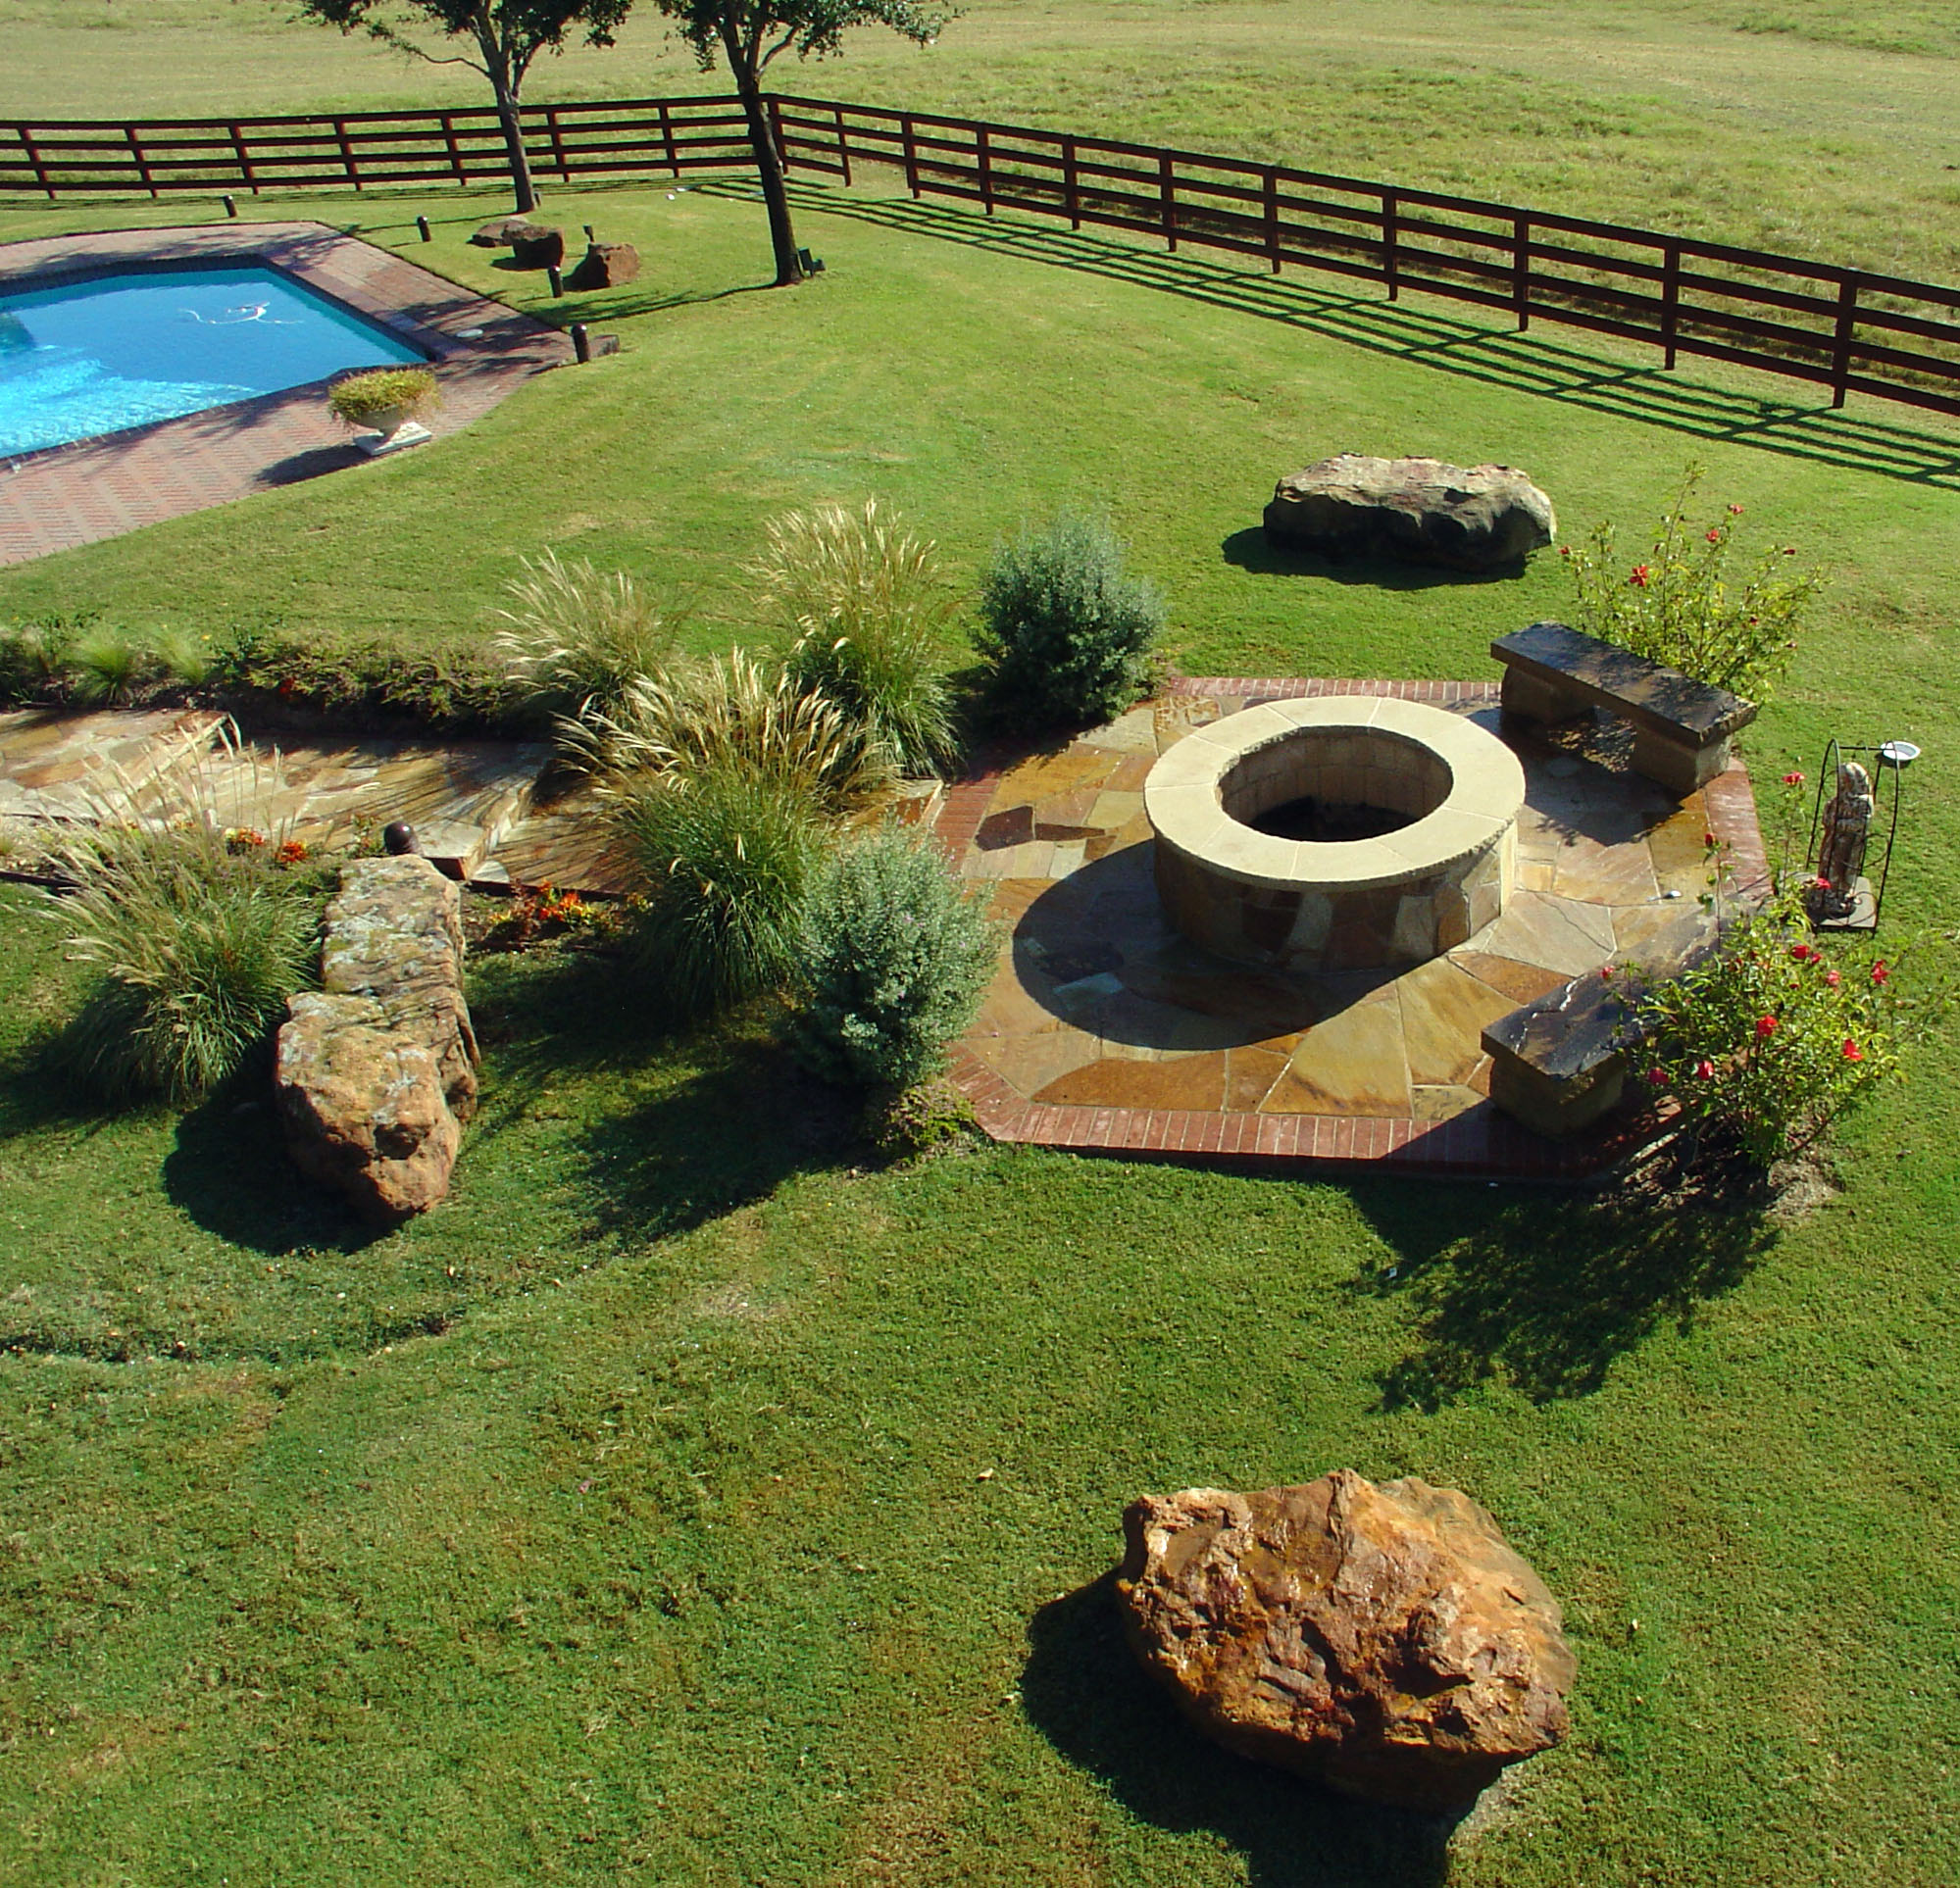 CAD landscape design and Texas plant recommendations